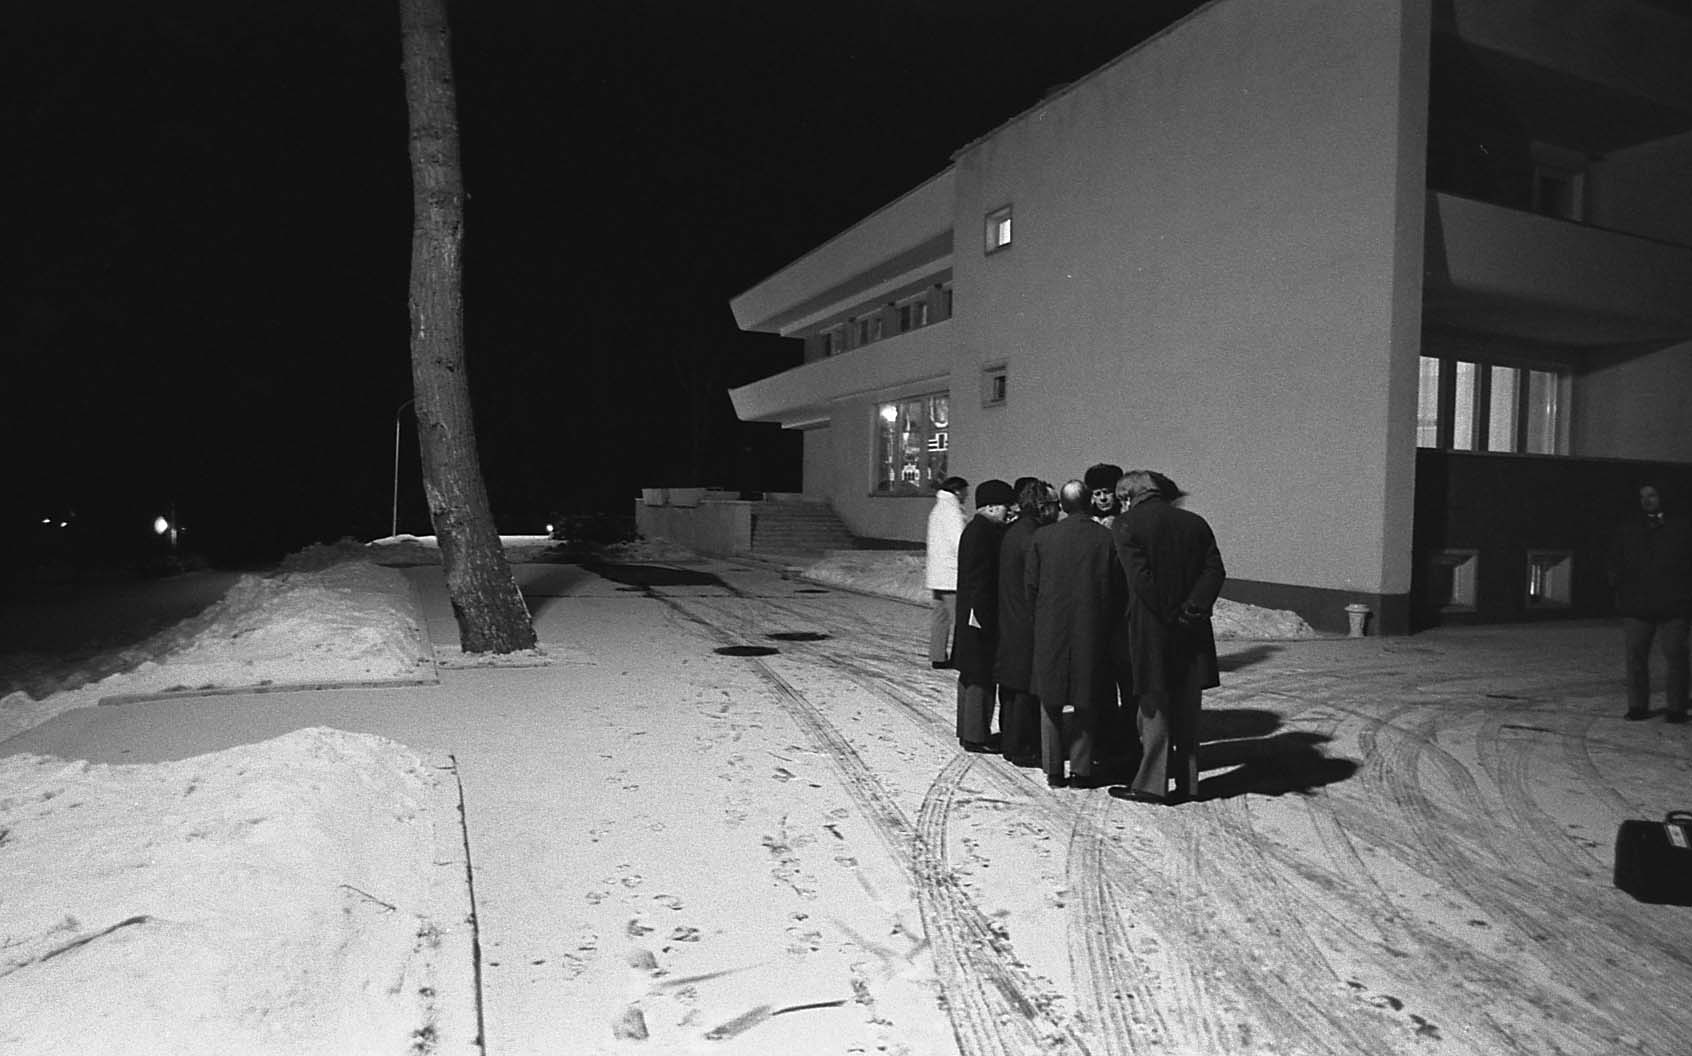 President Ford and the US Delegation meeting outside during the Vladivostok Summit to avoid being bugged, 1974